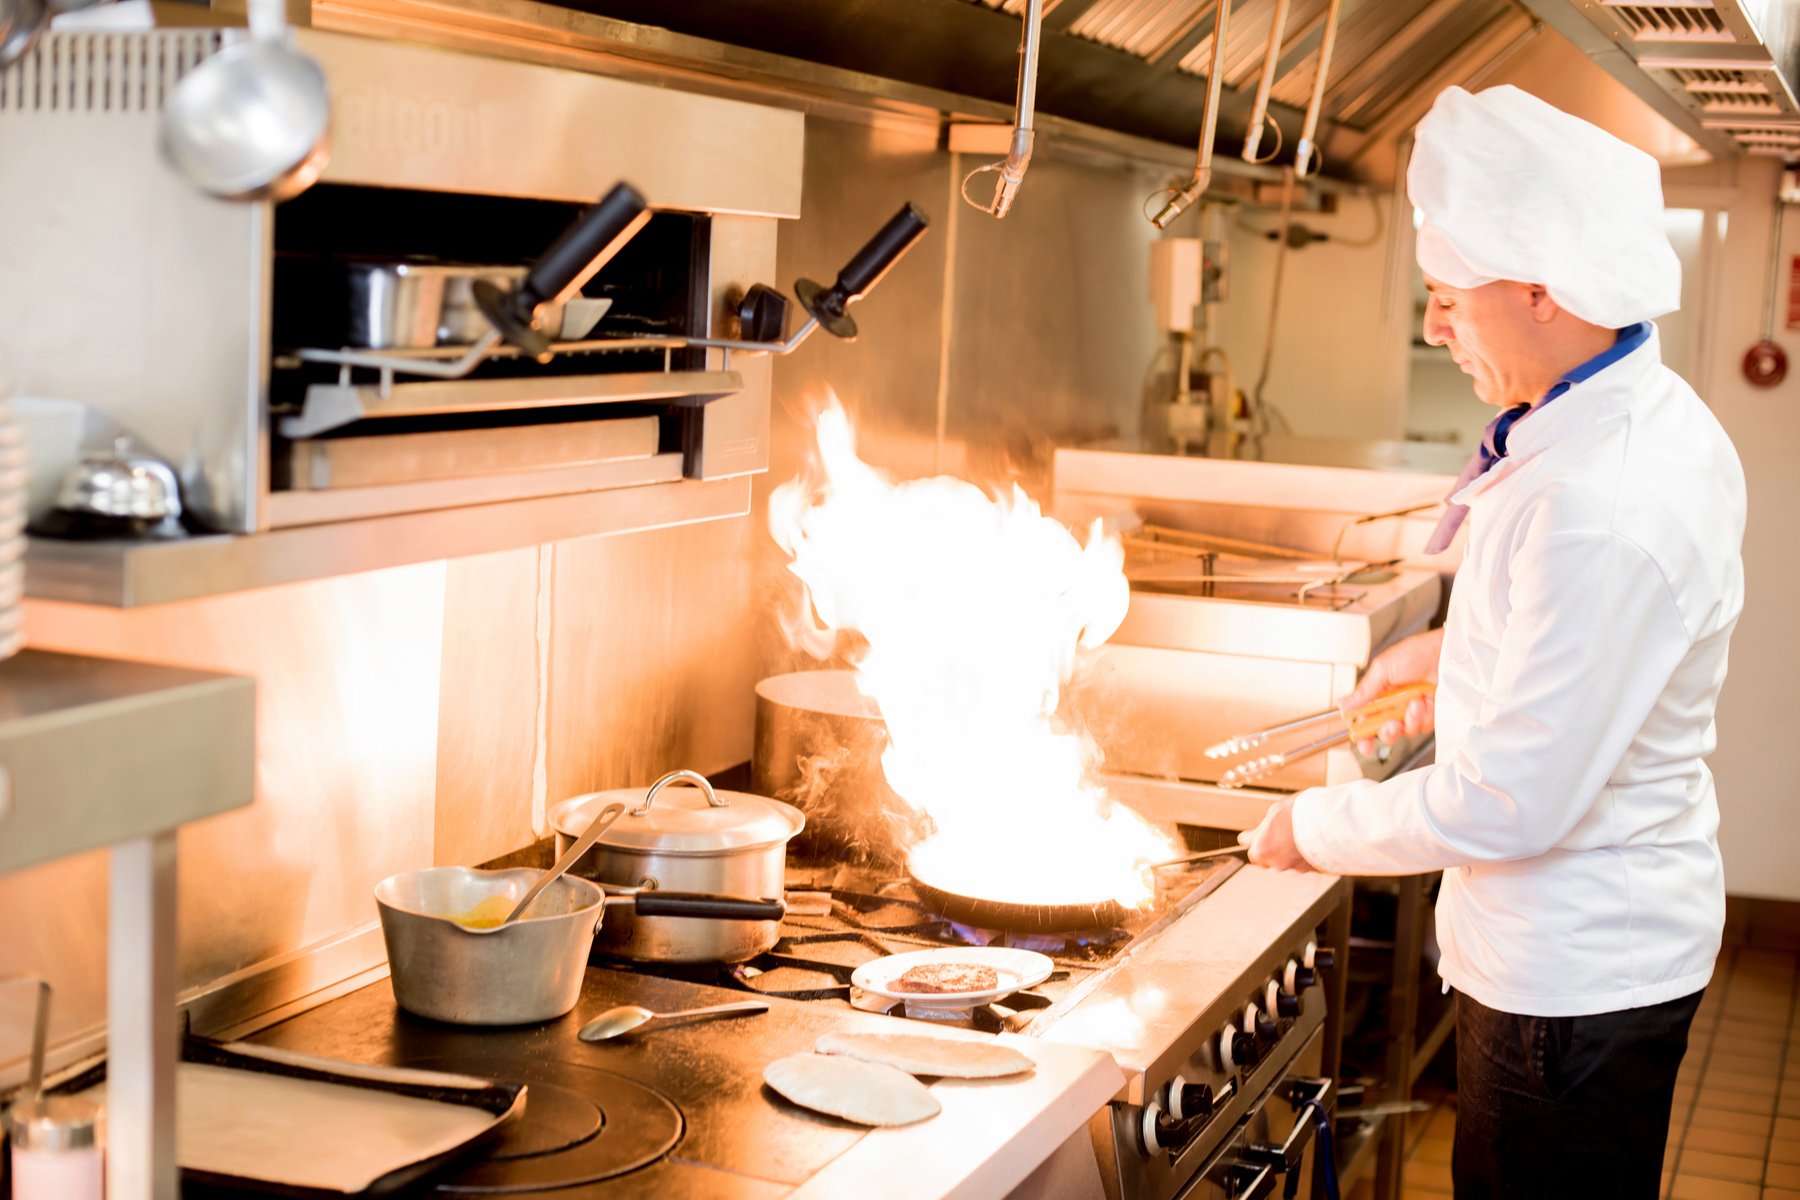 French chef in the kitchen